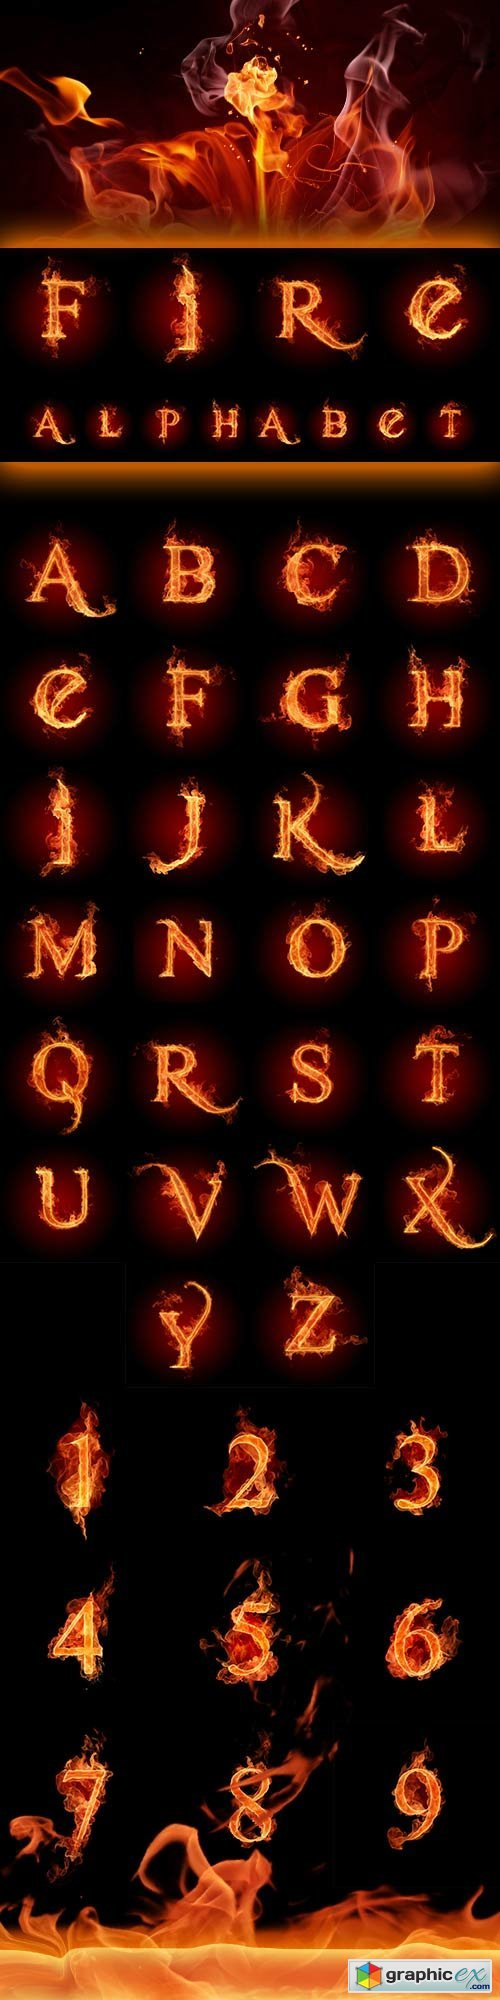 The alphabet of fire JPEG + PSD » Free Download Vector Stock Image